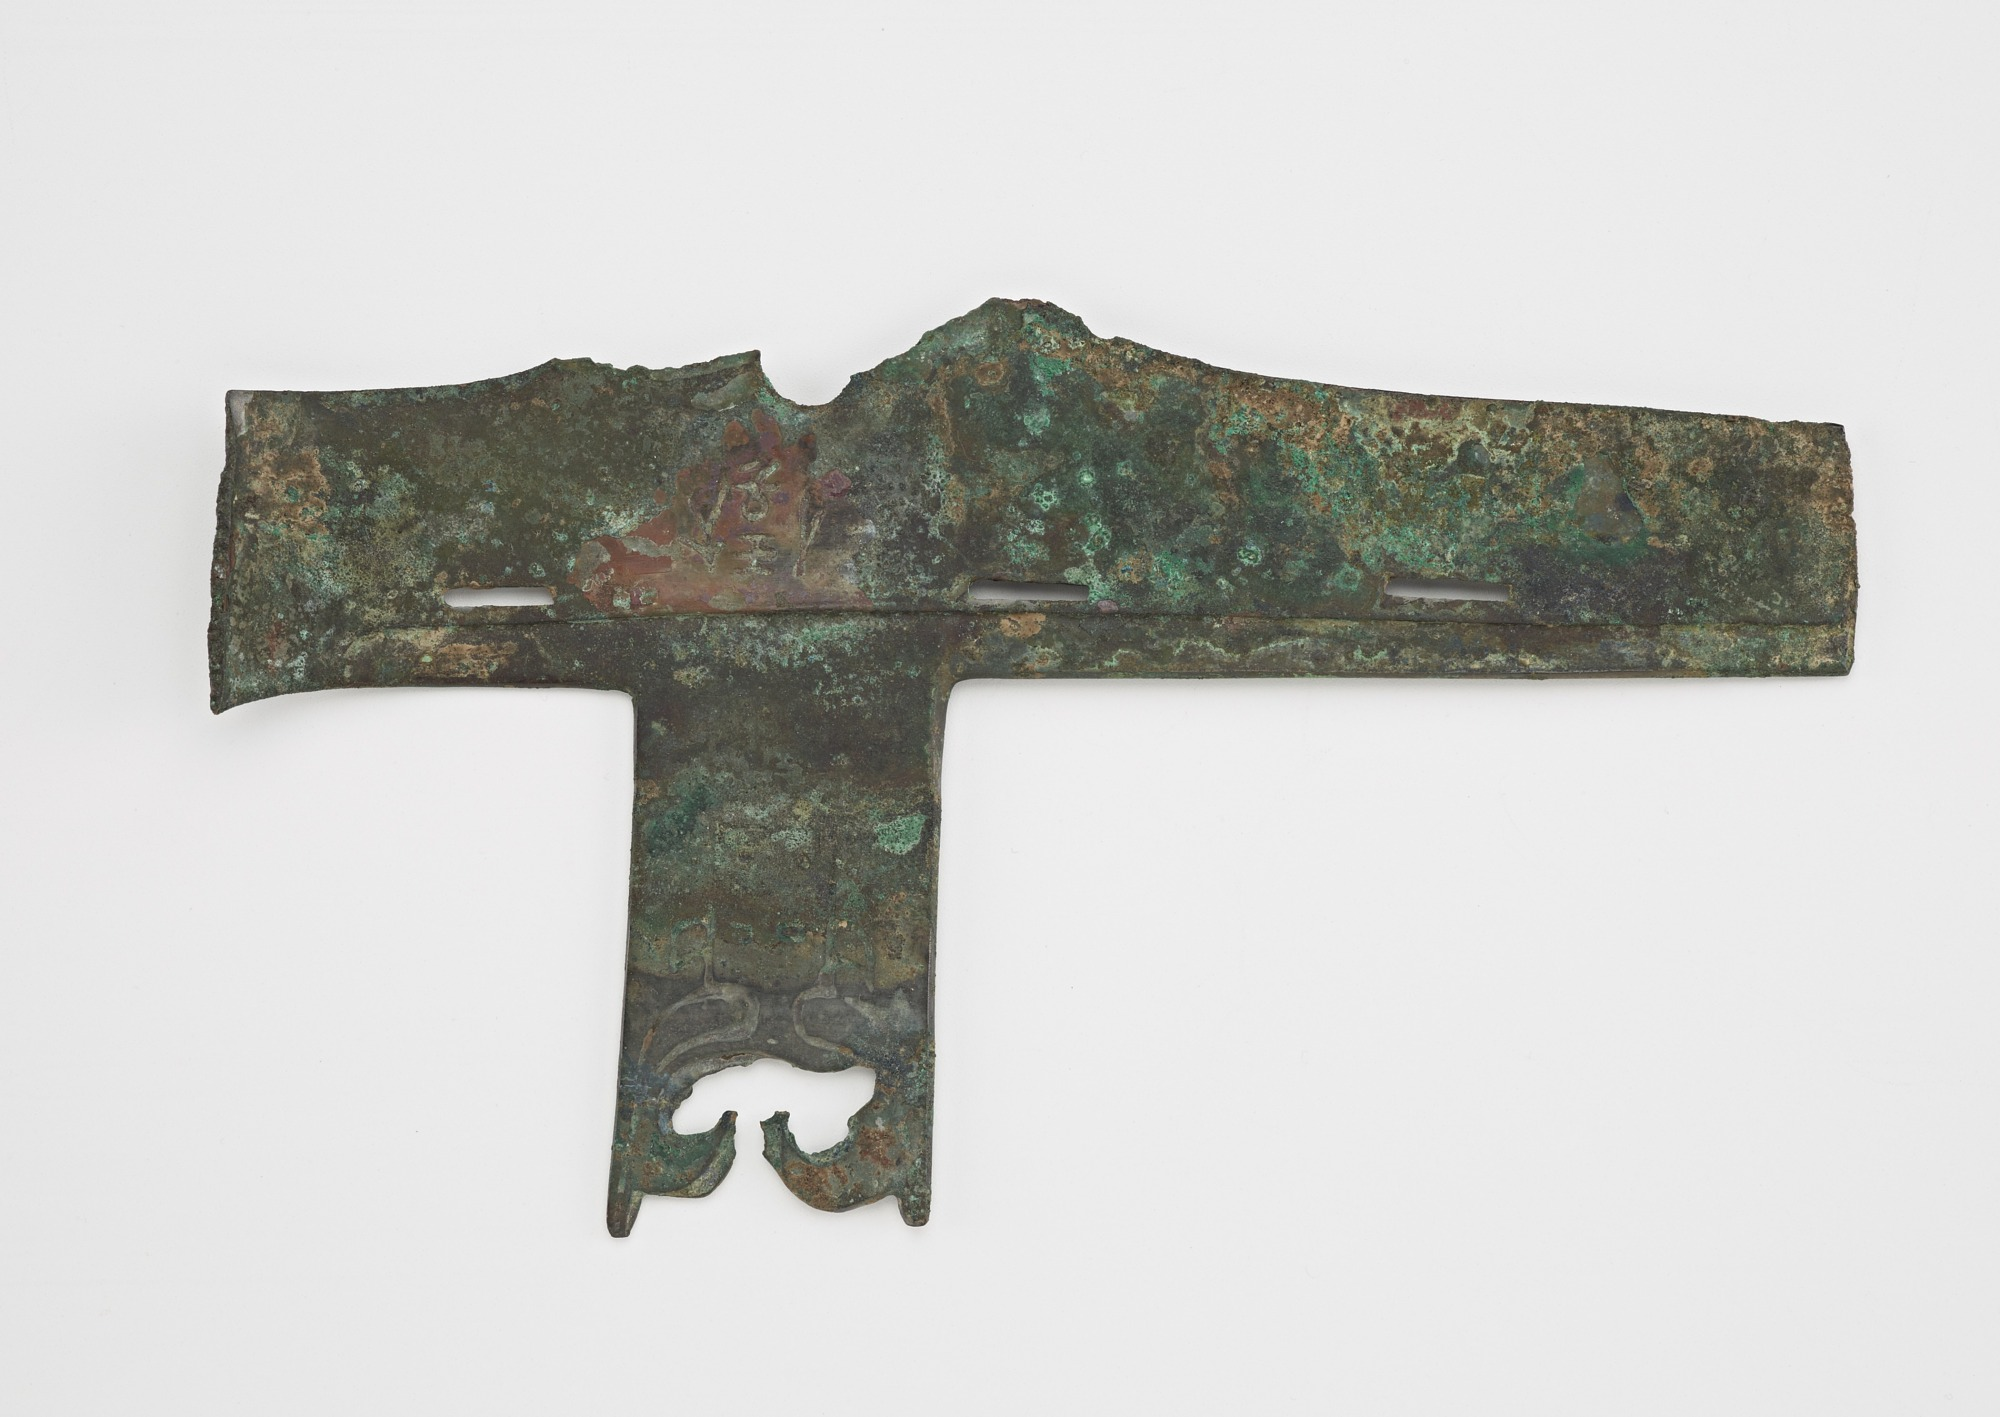 Dagger-axe (ge) with water buffalo head (fragment)